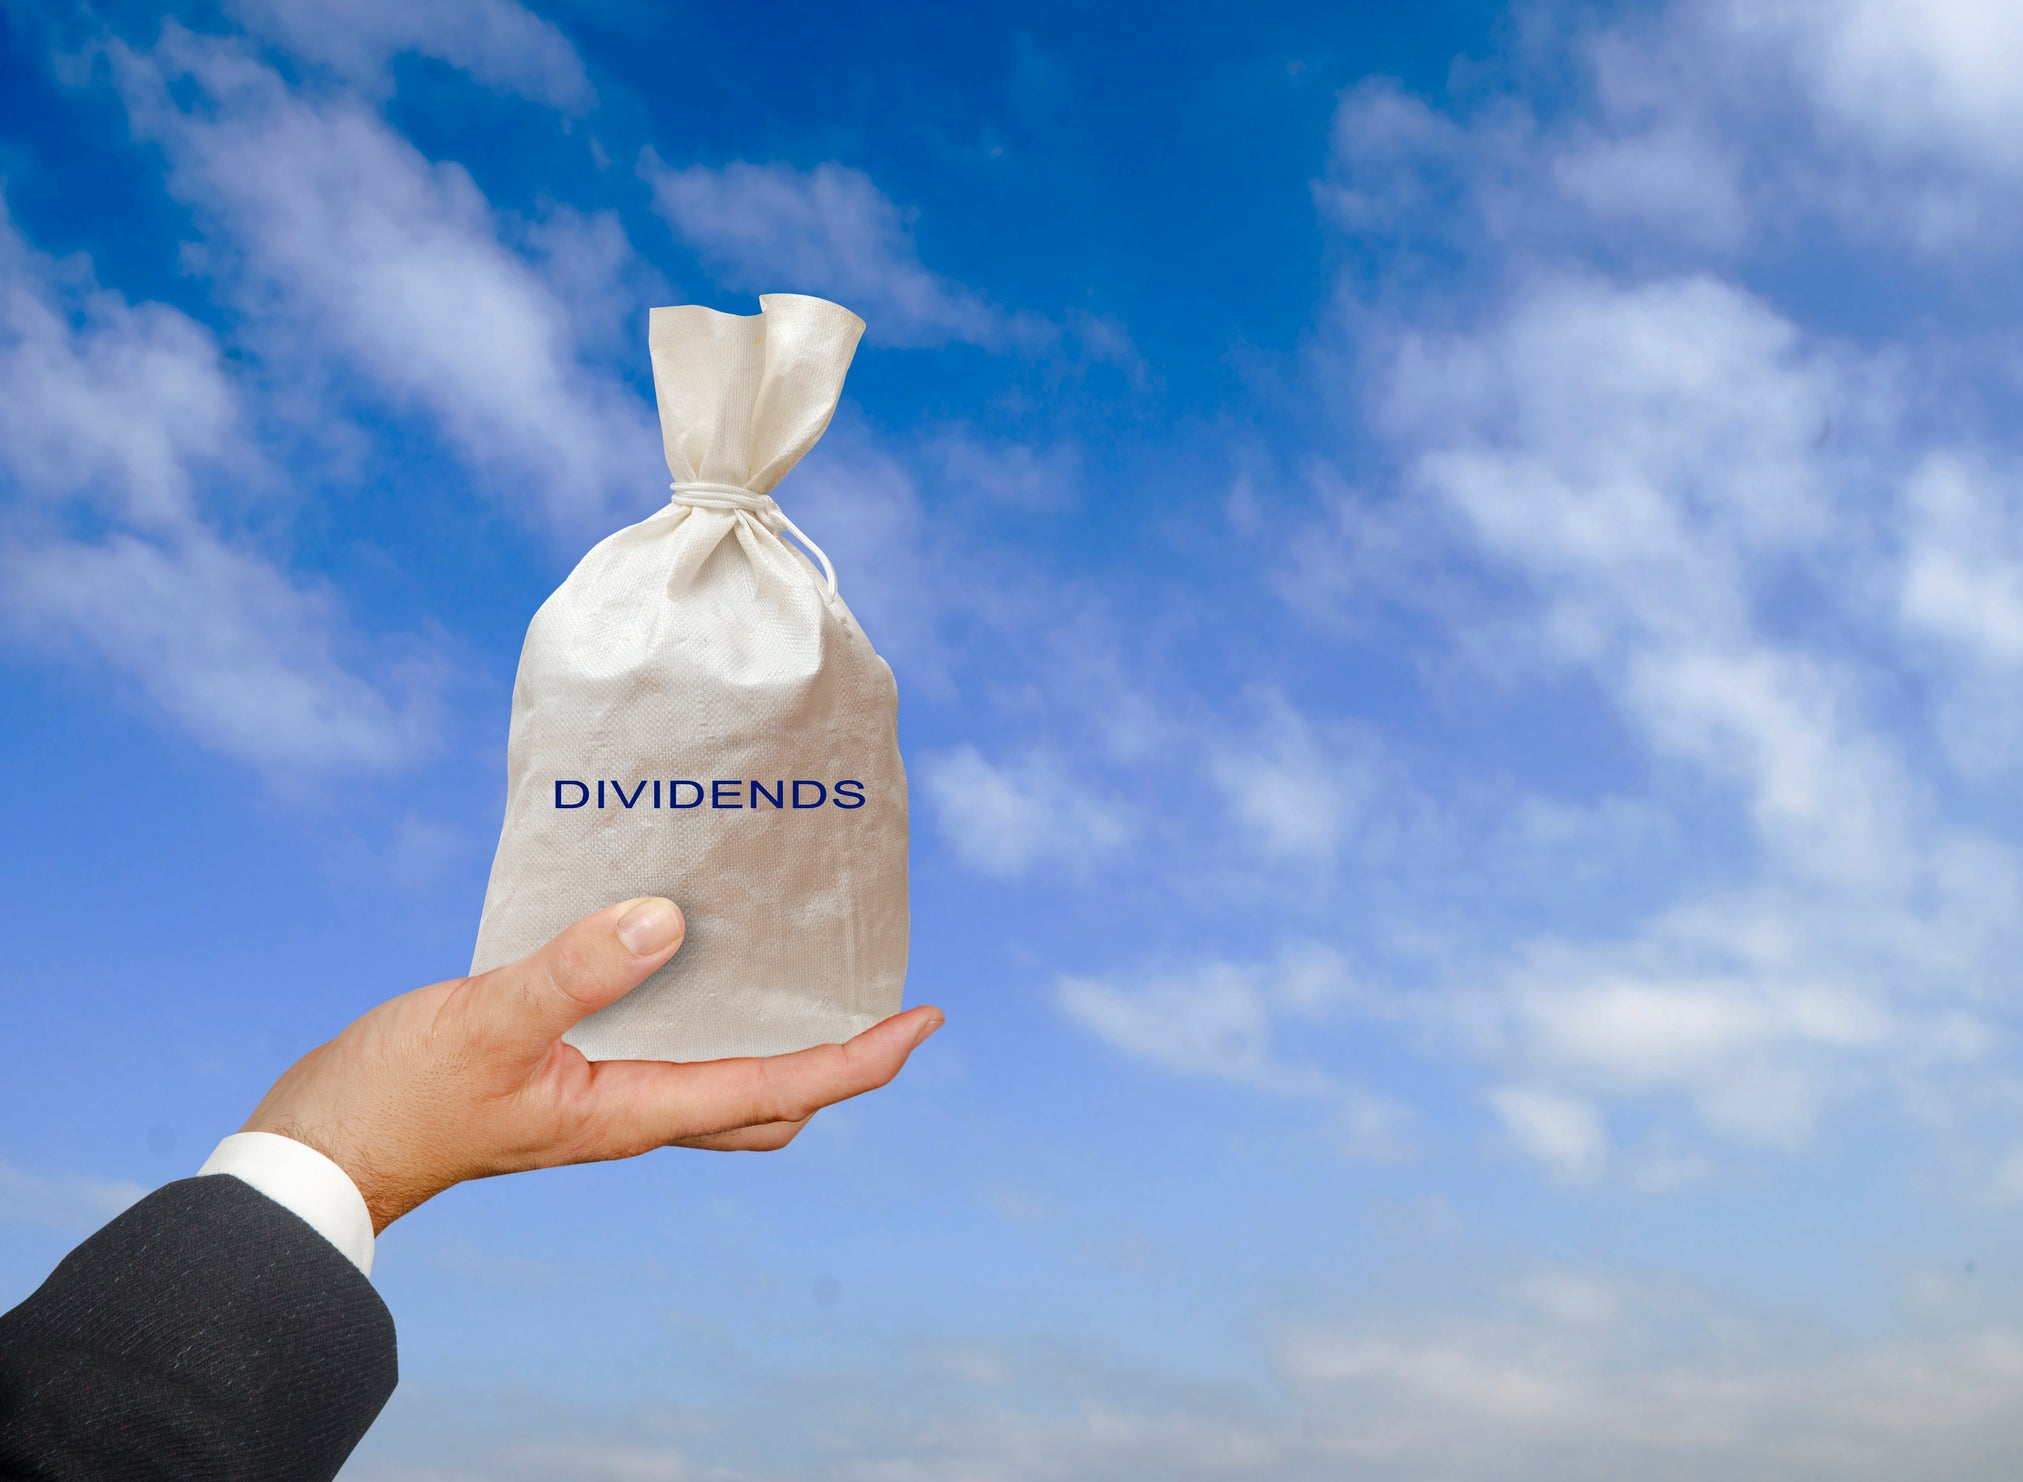 6 Stocks to Buy With Dividends Yielding More Than 6%